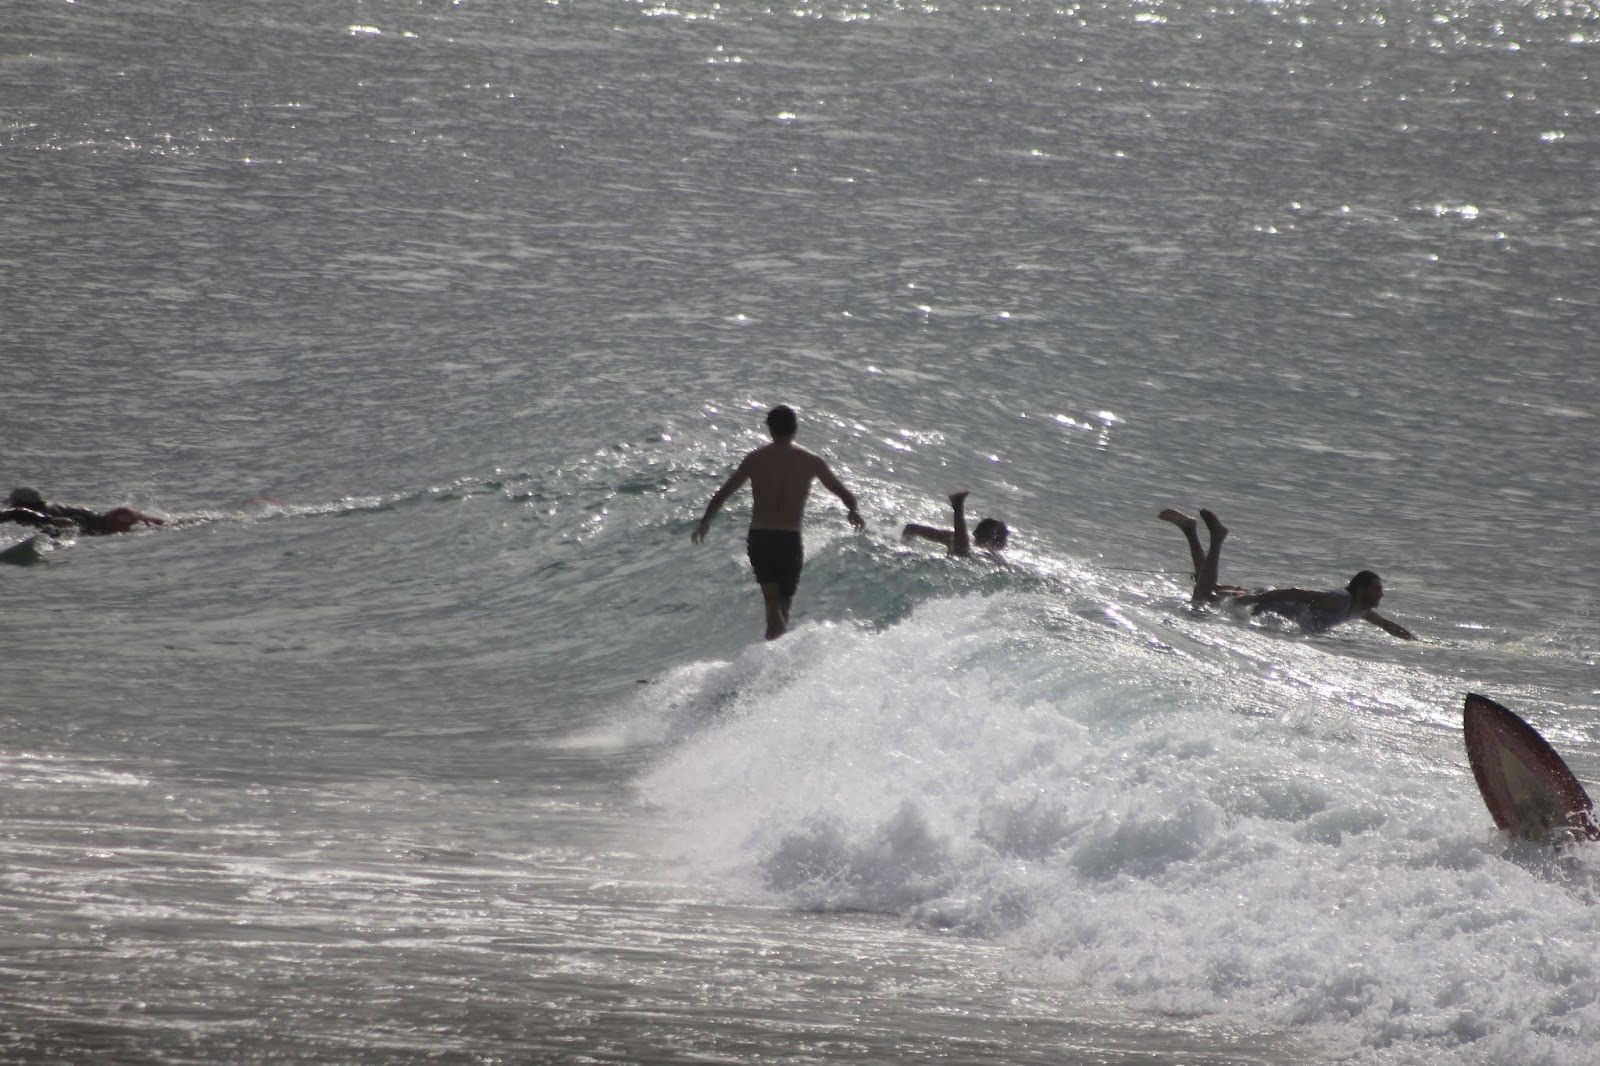 11-03-2016-australia-siebert-surfboards-19